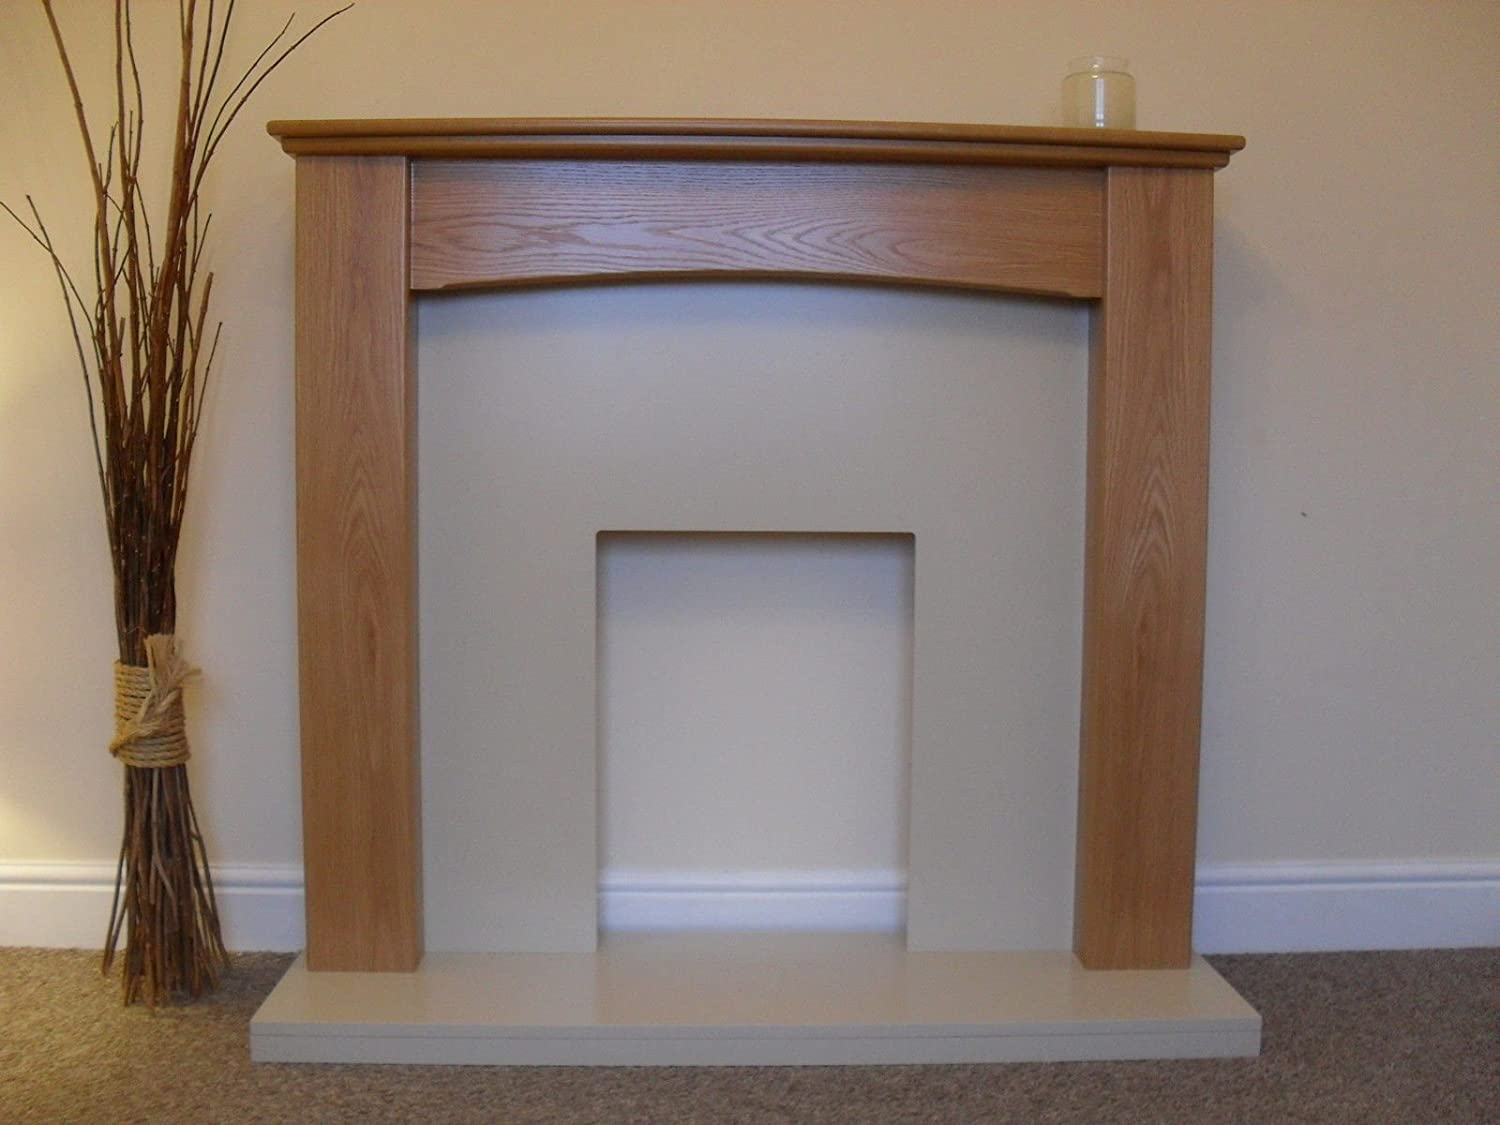 electric oak mantel surround cream stone effect hearth back flat